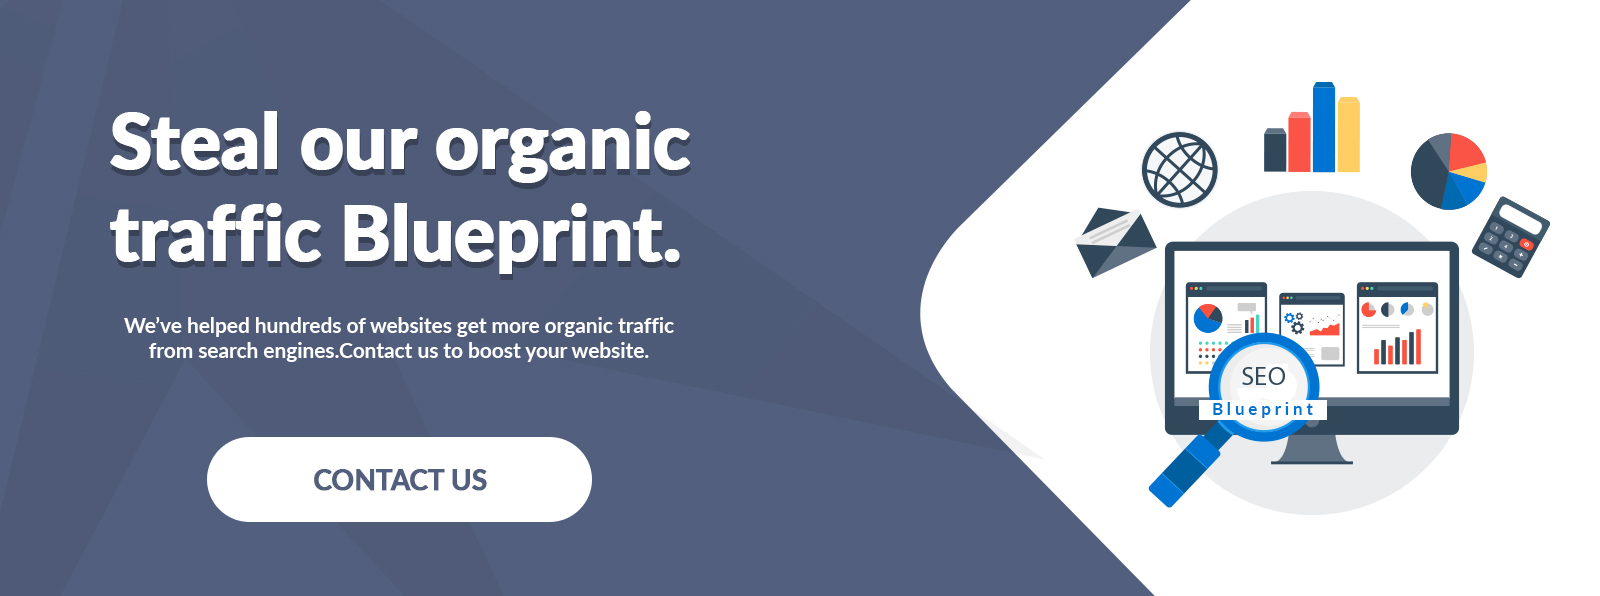 steal our organic traffic blueprint